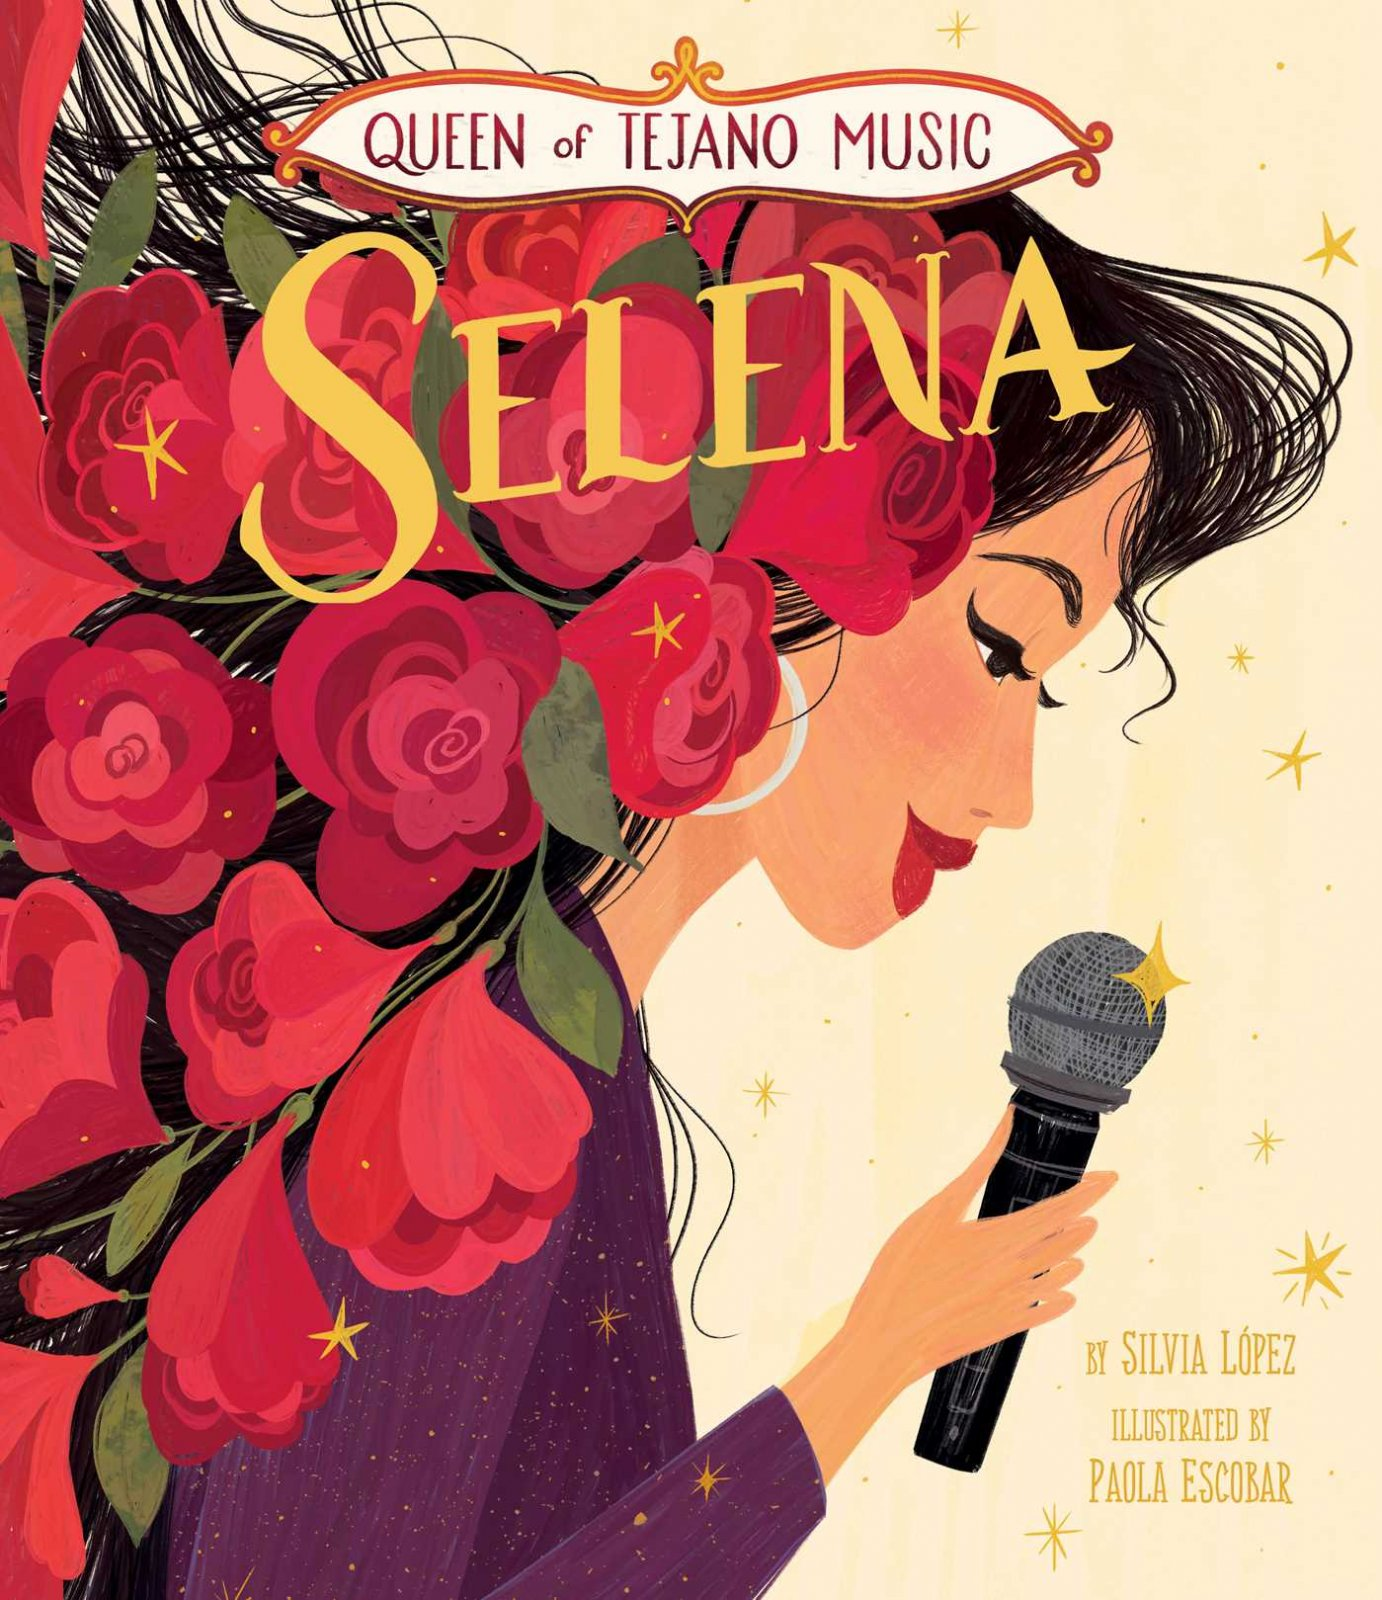 Selena: Queen of Tejano Music by Silvia Lopez